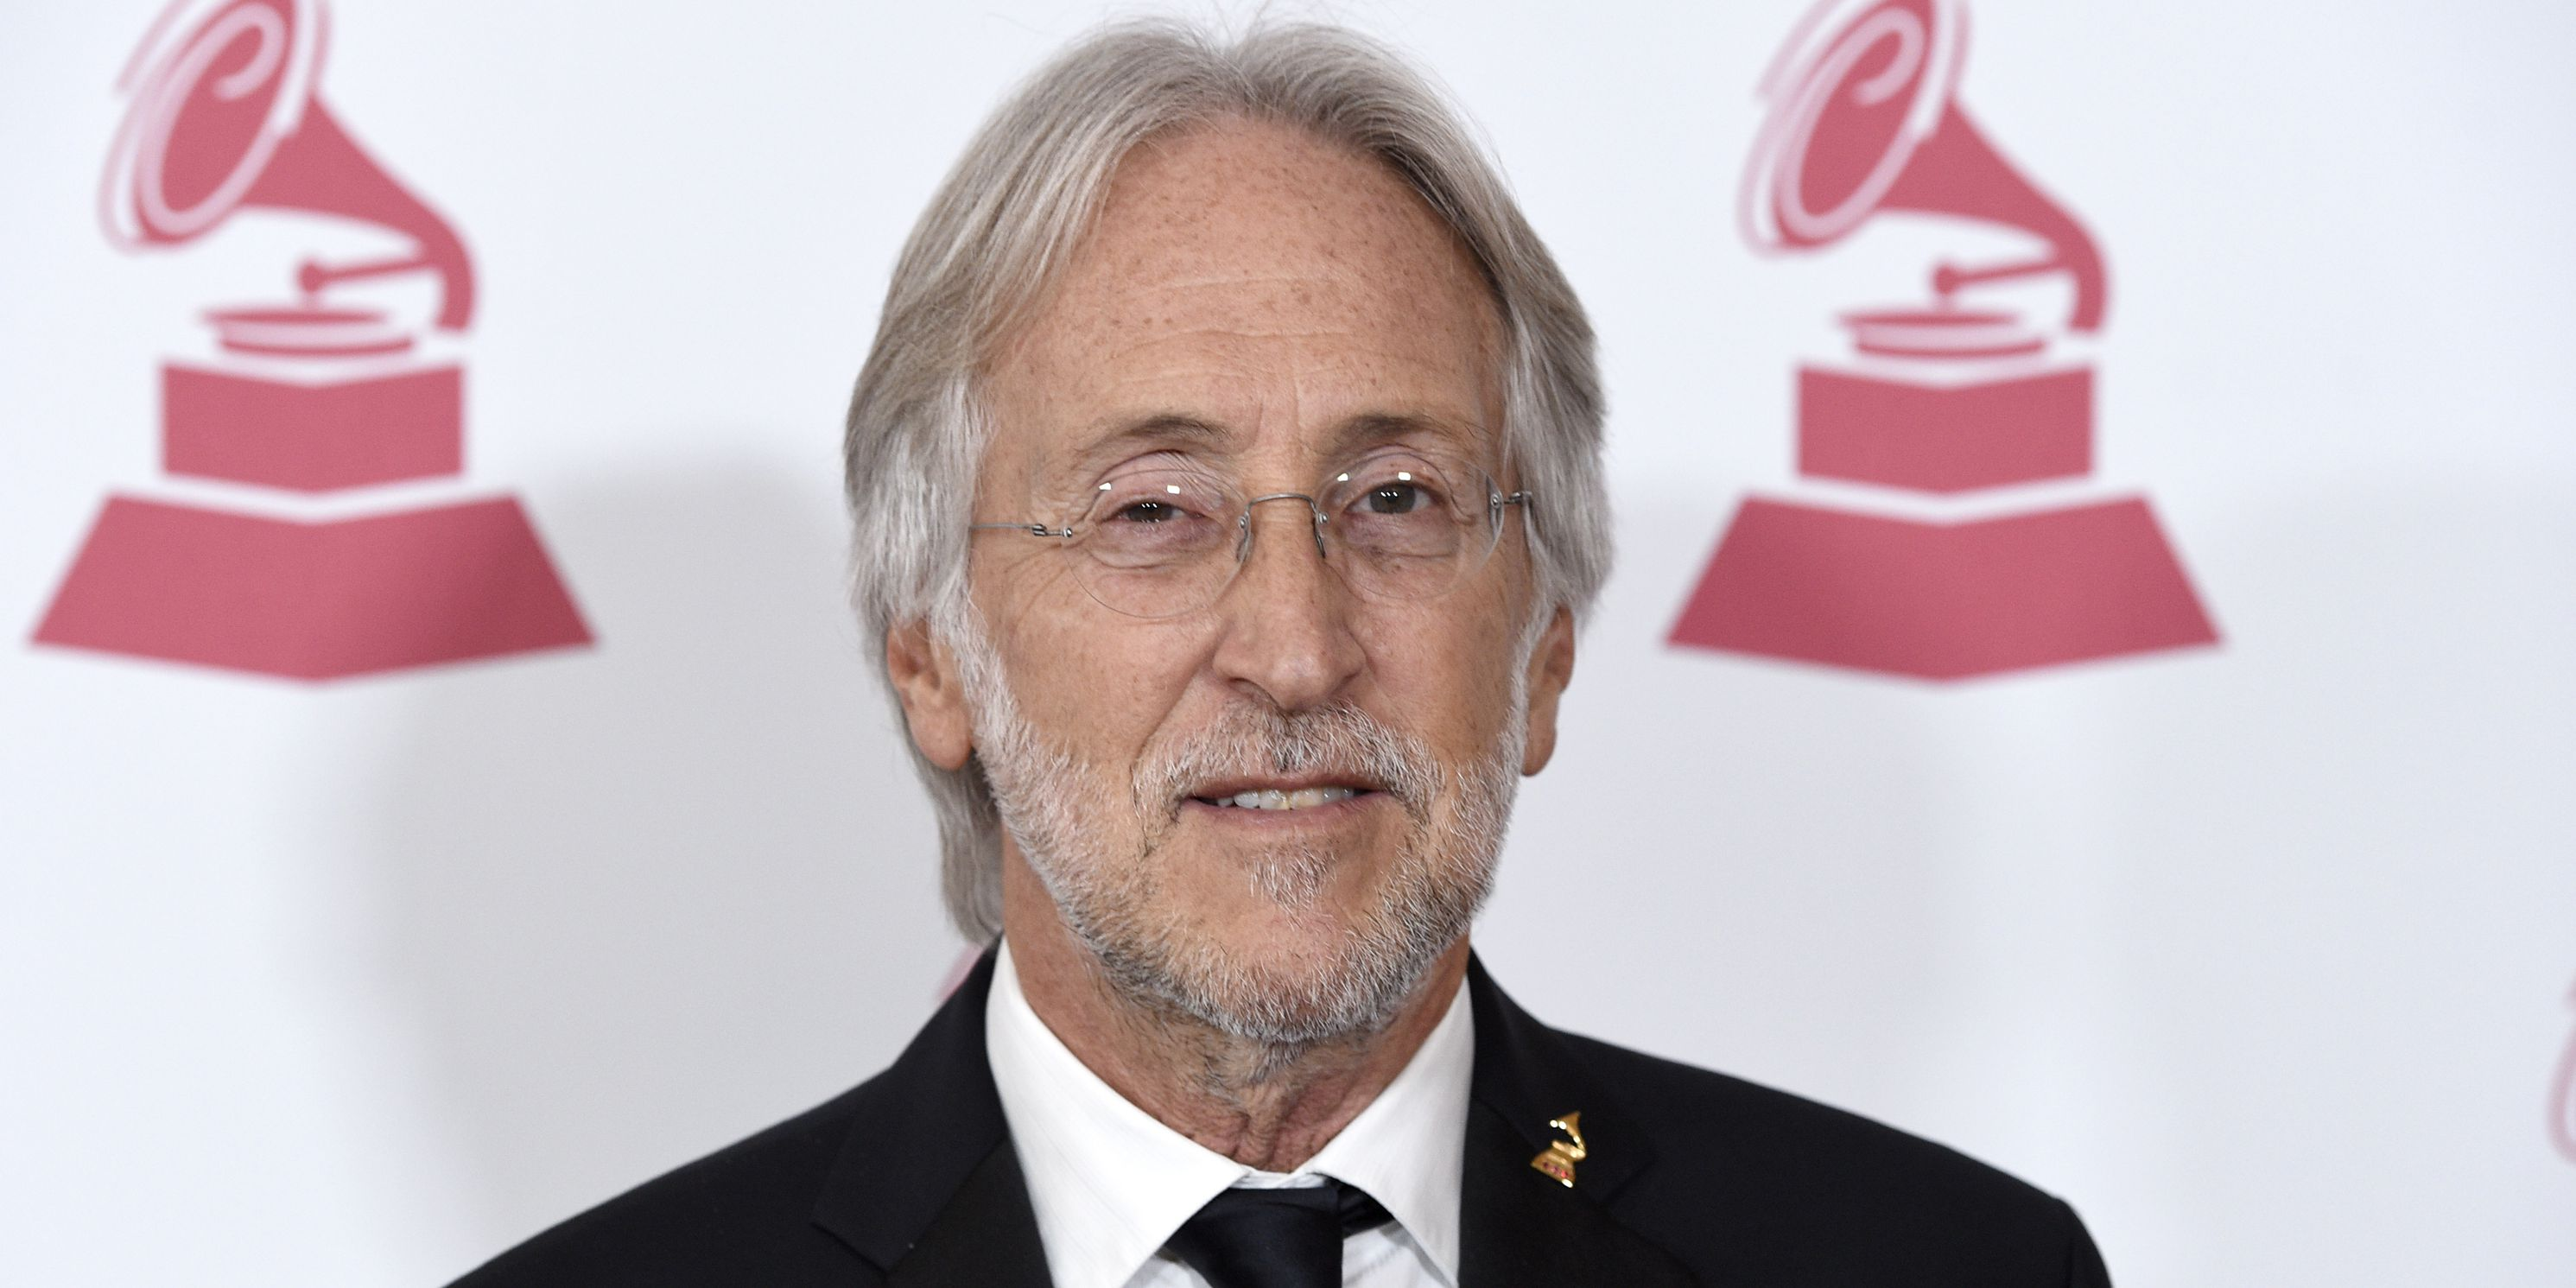 Ex-Grammys CEO says rape allegation 'false and outrageous'